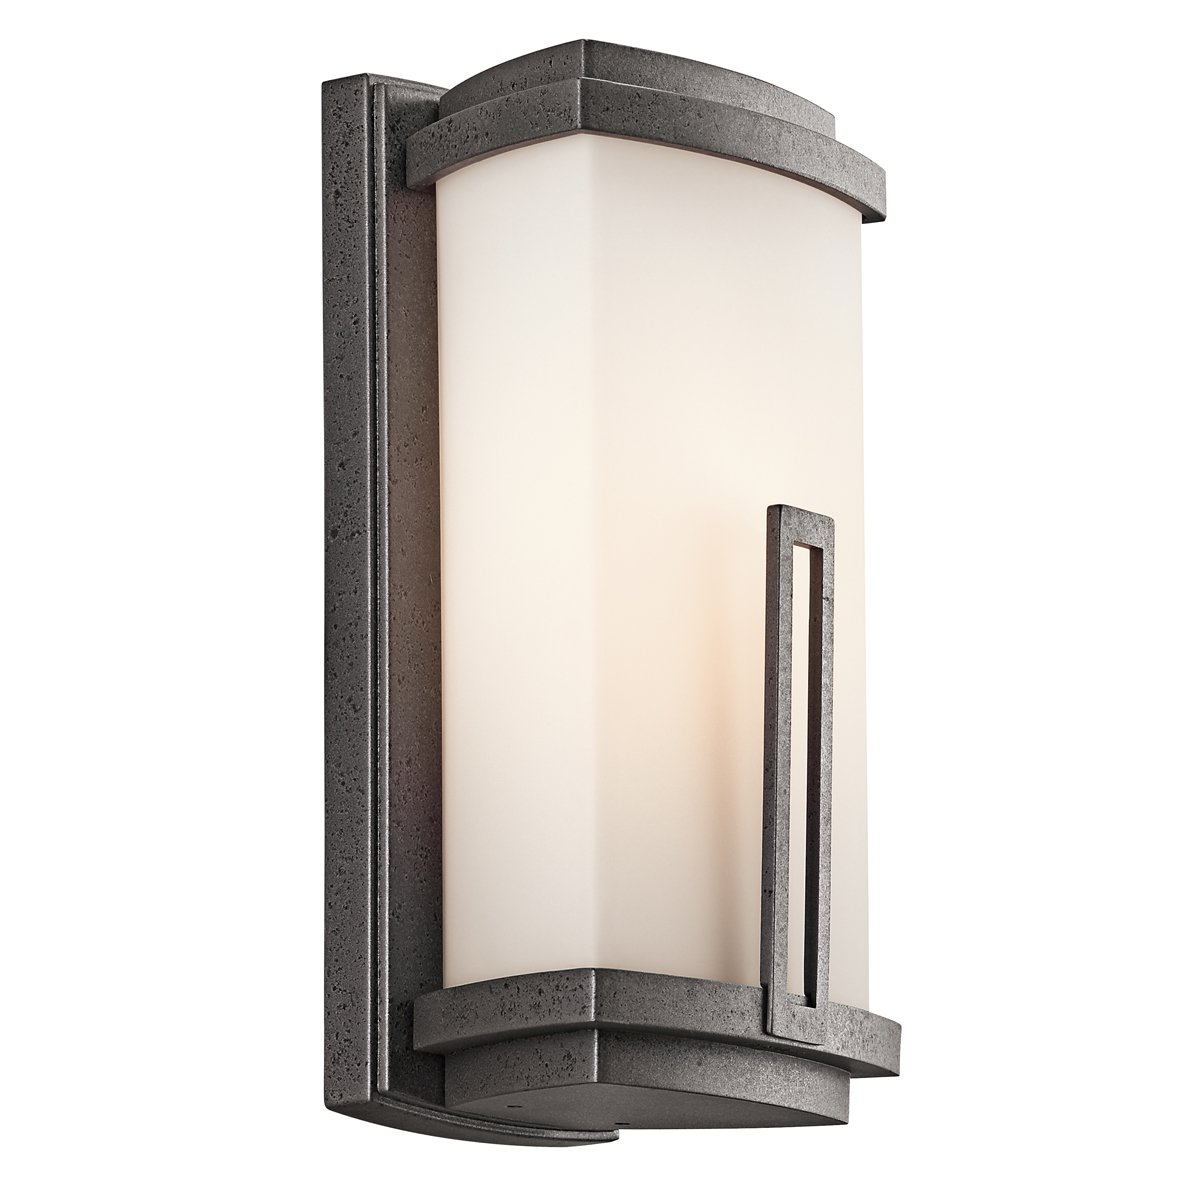 Kichler Lighting 49110AVI Leeds 12 1 2 Inch Light Outdoor Wall Lantern   Anvil Iron with Satin Etched Cased Opal Glass   Wall Porch Lights    Amazon comKichler Lighting 49110AVI Leeds 12 1 2 Inch Light Outdoor Wall  . Kichler Lighting Outdoor Sconce. Home Design Ideas